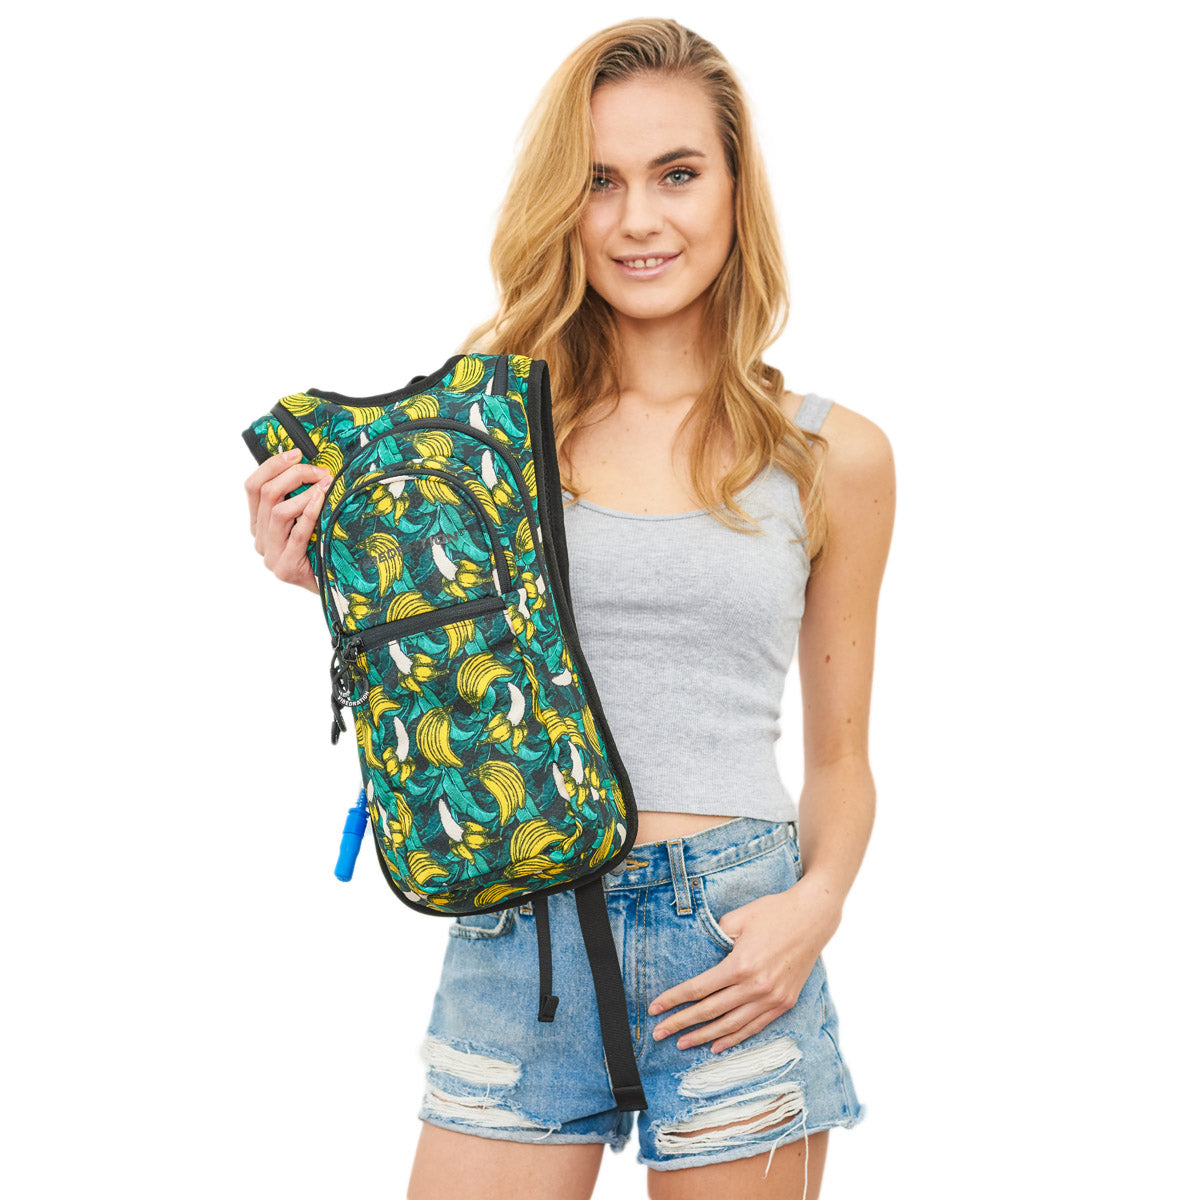 Female holding Green Tropical Banana Print Hydration Backpack